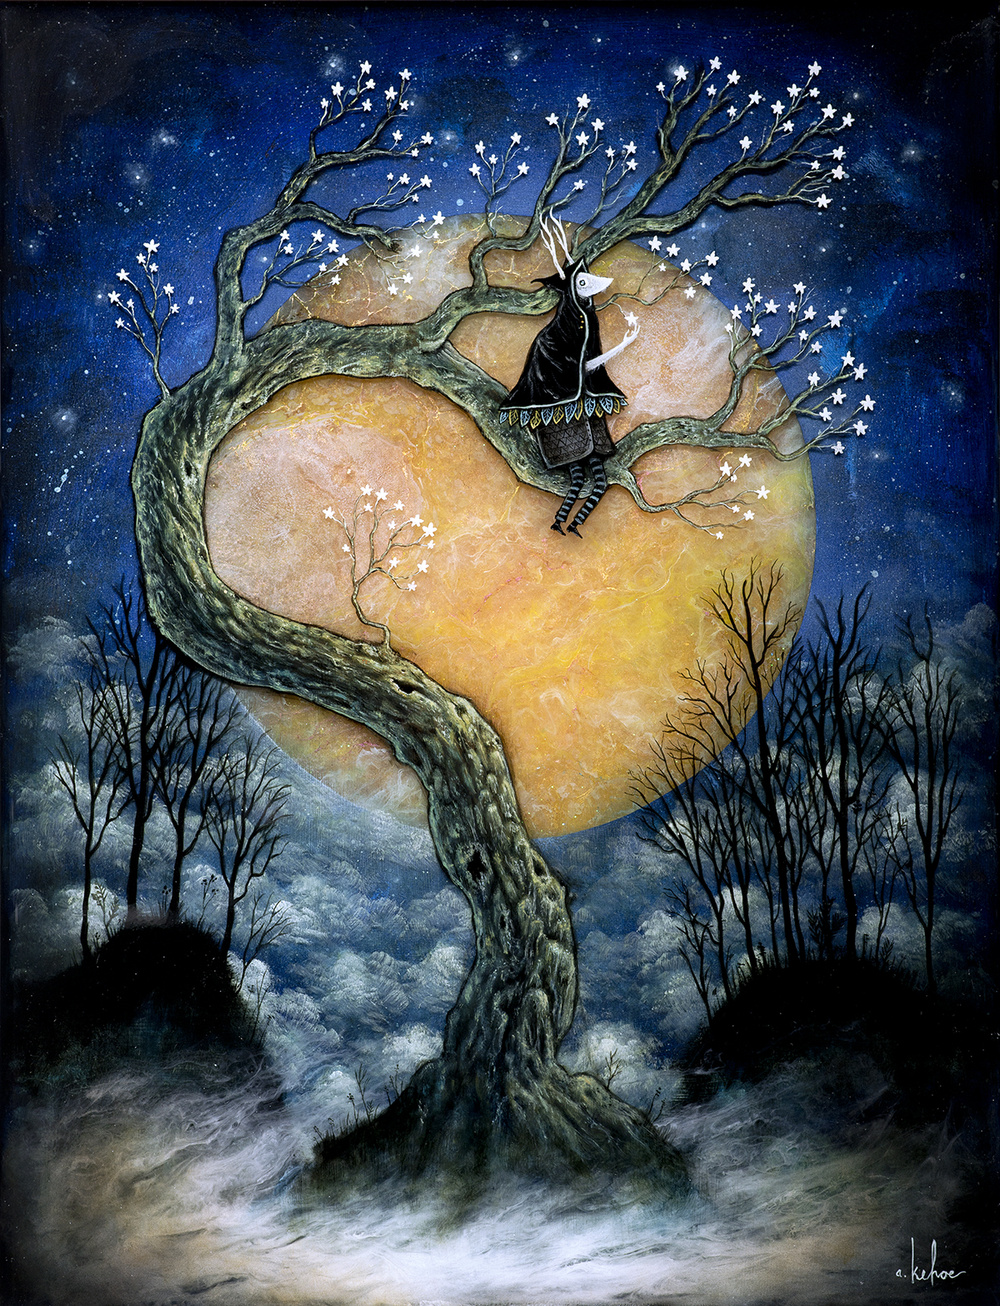 """Night Bloom"" by Andy Kehoe.  8"" x 10"" Giclee.  Ed of 200 N.  $25"